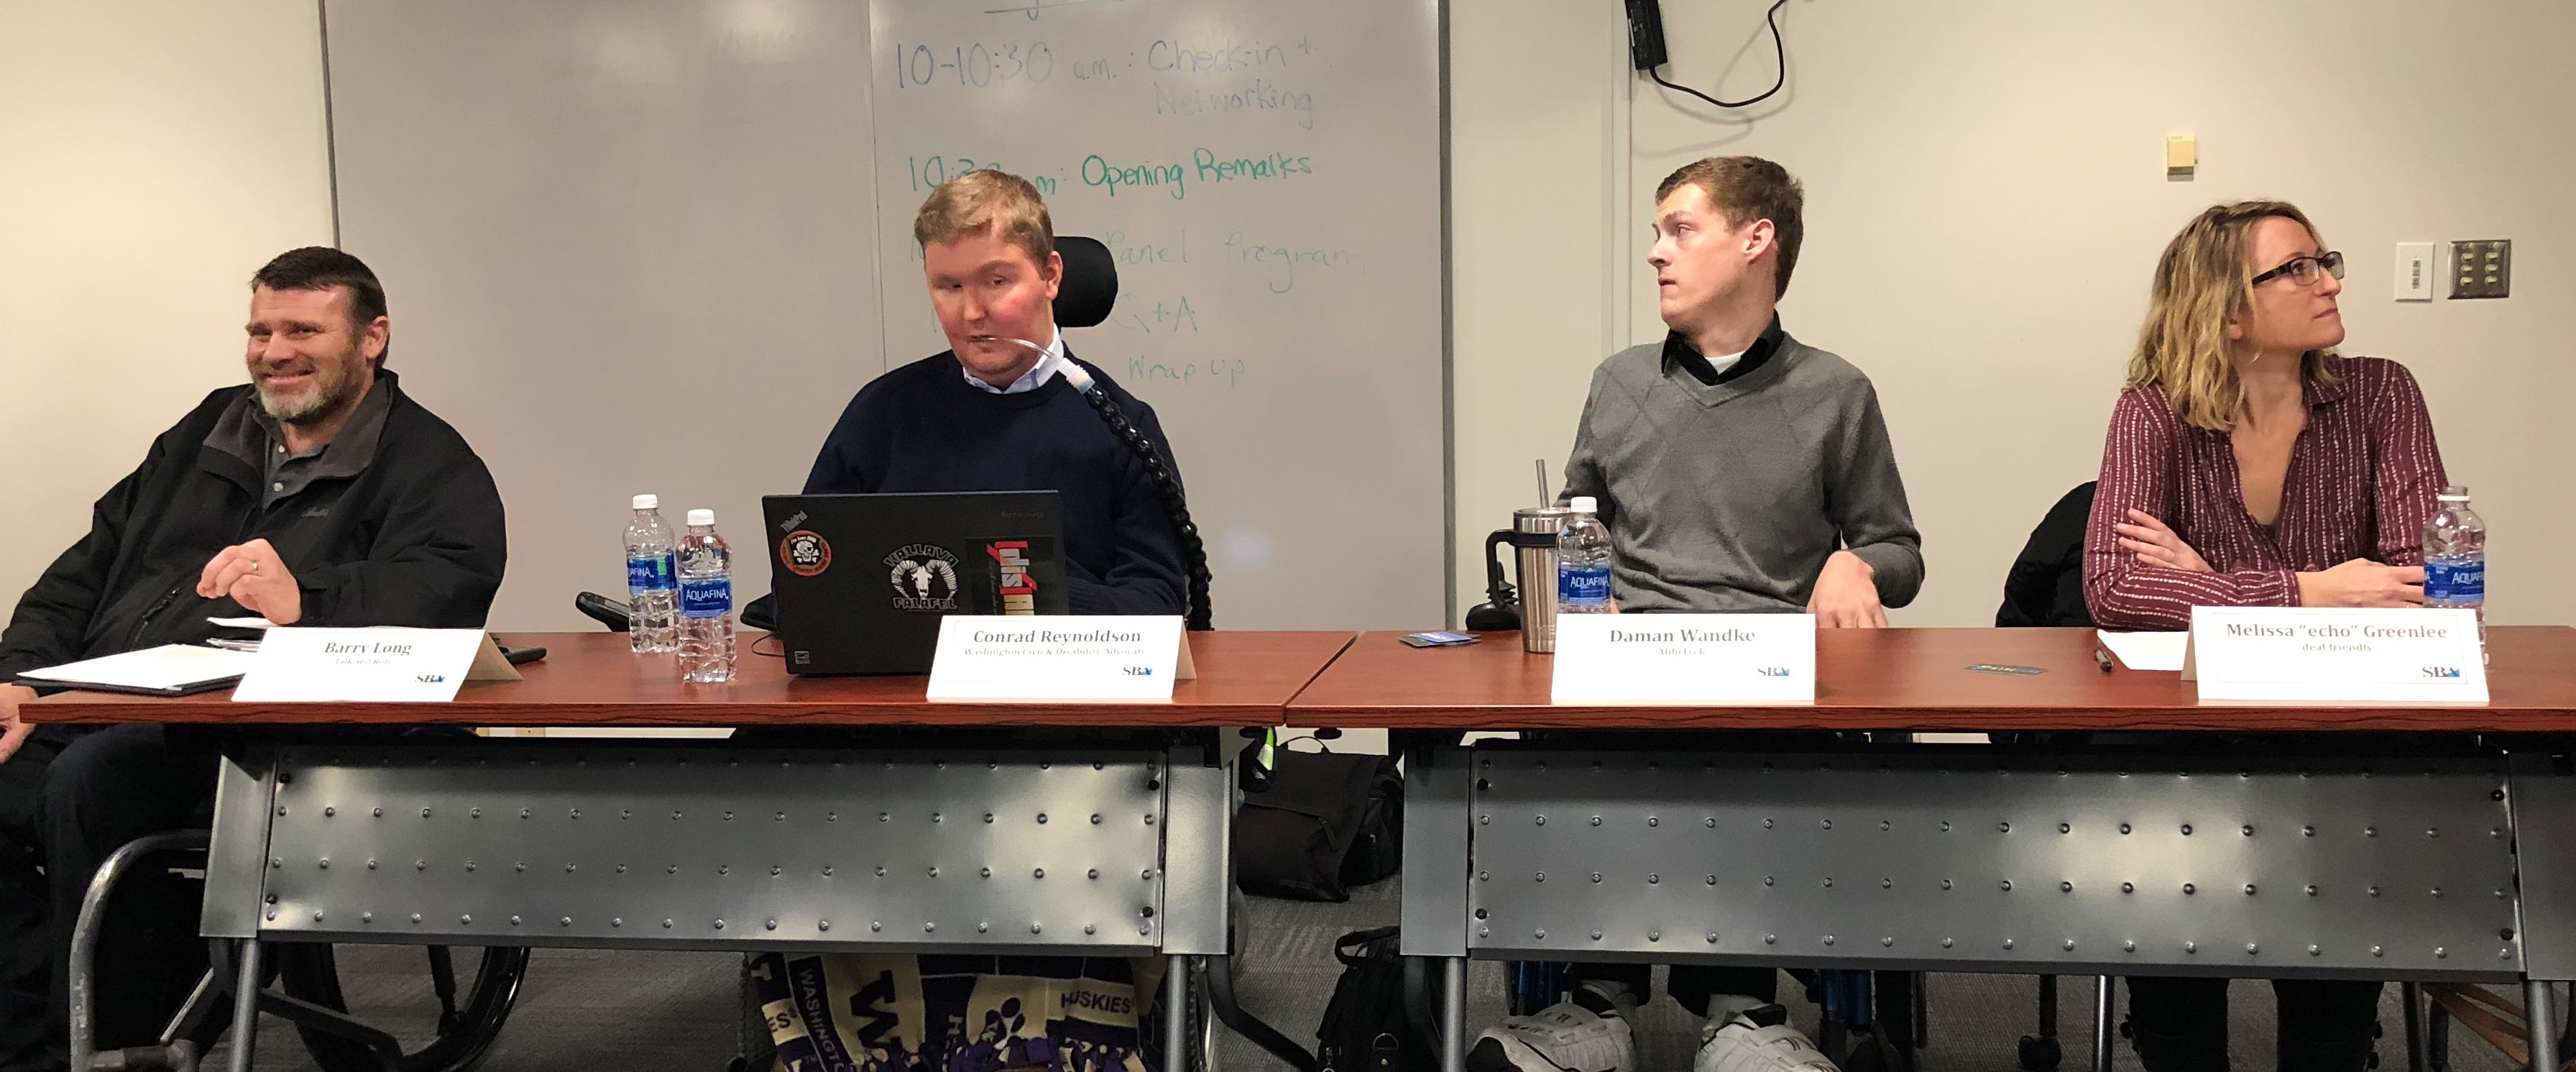 Daman Wandke sits on a panel with other disability advocates.